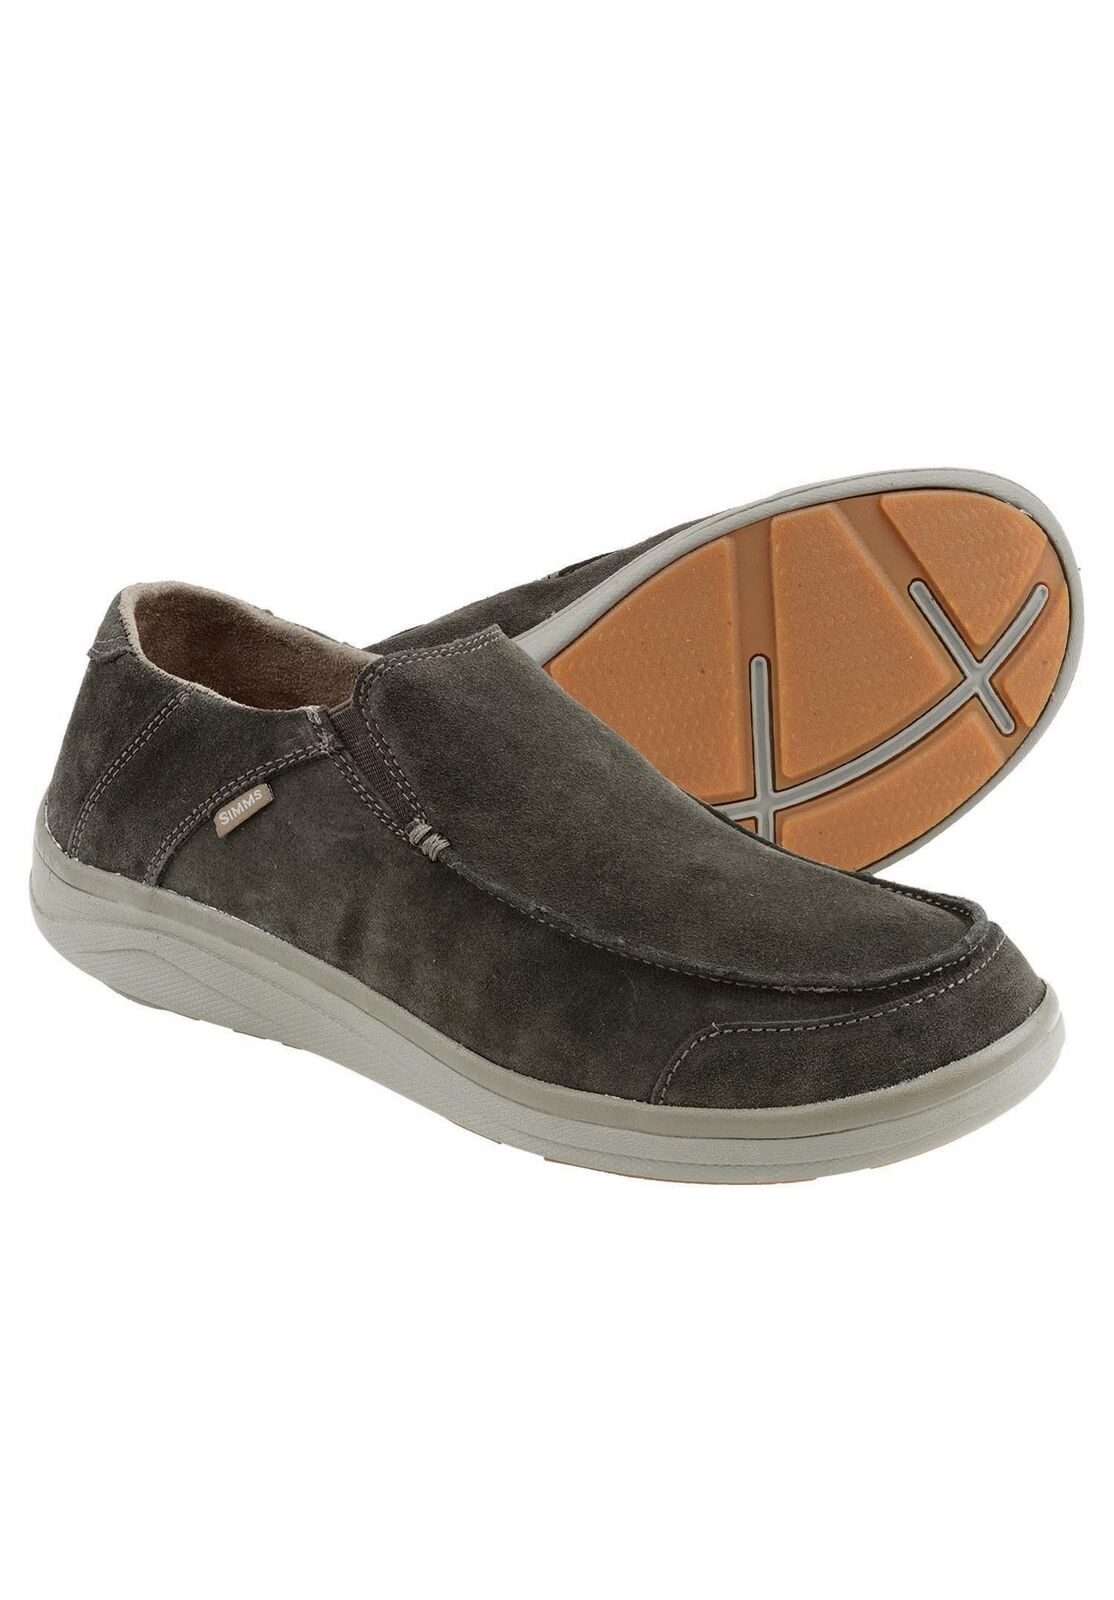 Simms Westshore  Leather Slip On  shoes Dark Olive - Size 11.5 -CLOSEOUT  welcome to order